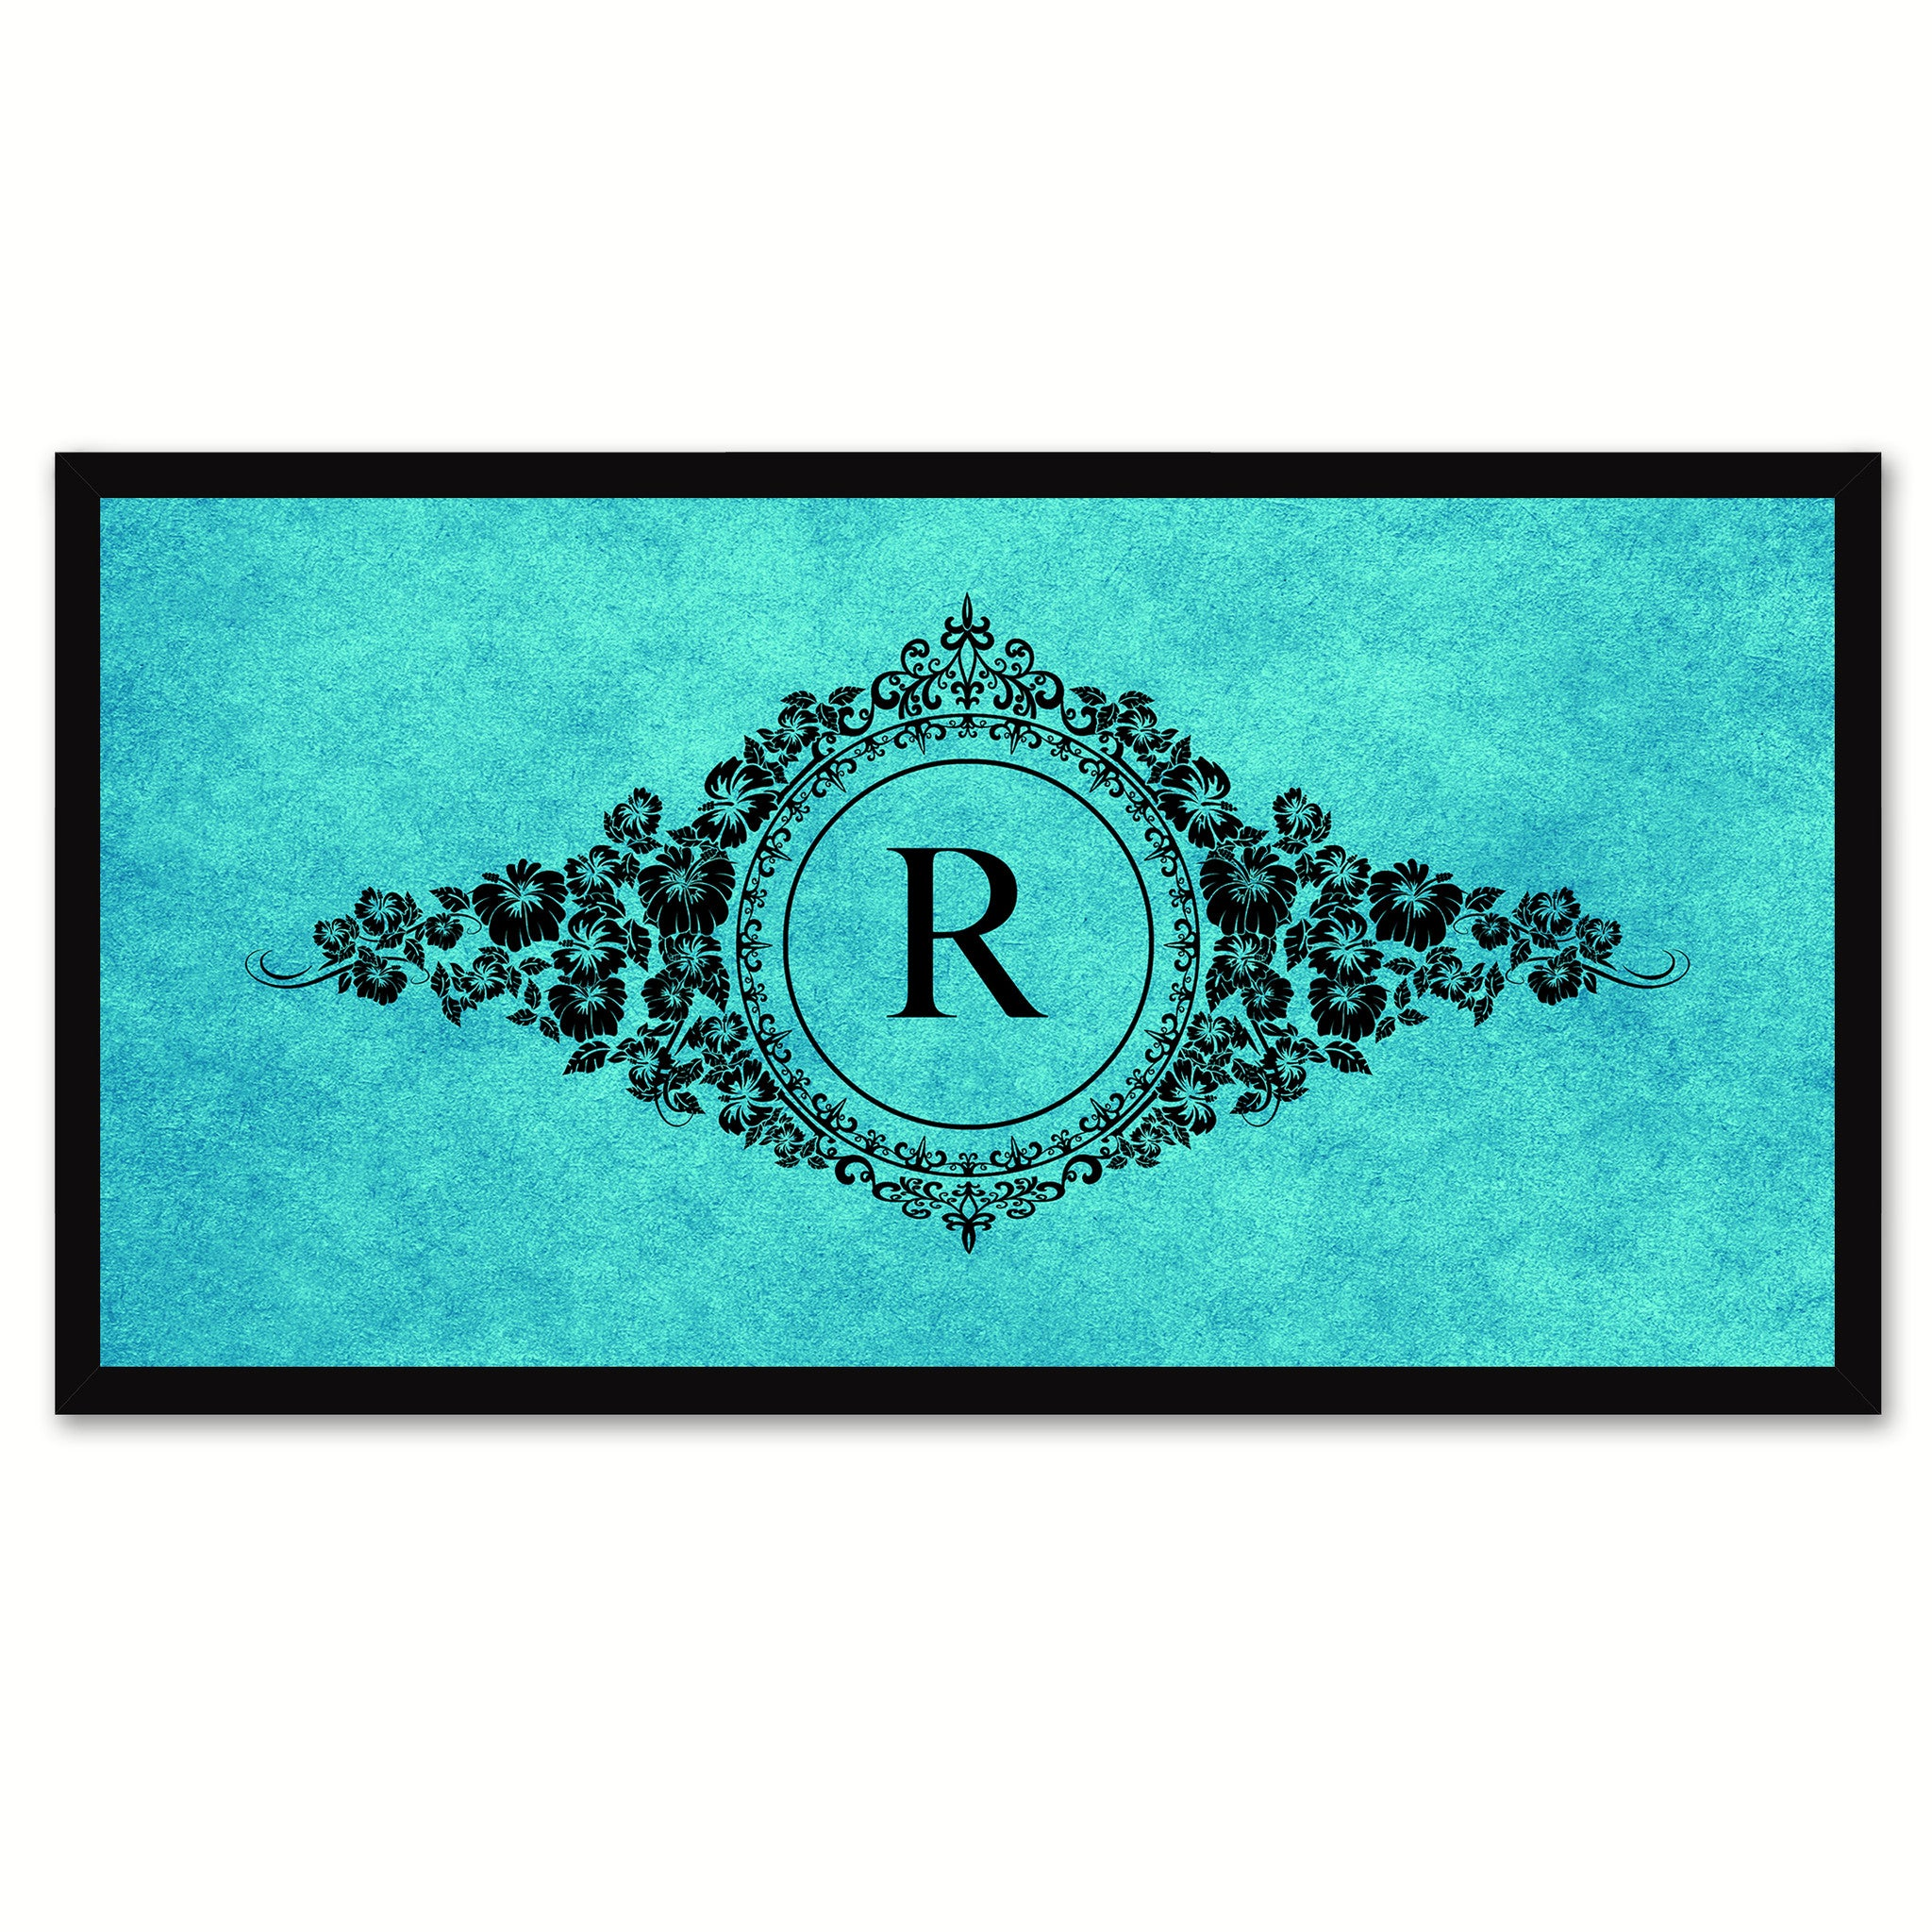 Alphabet Letter R Auqa Canvas Print, Black Custom Frame